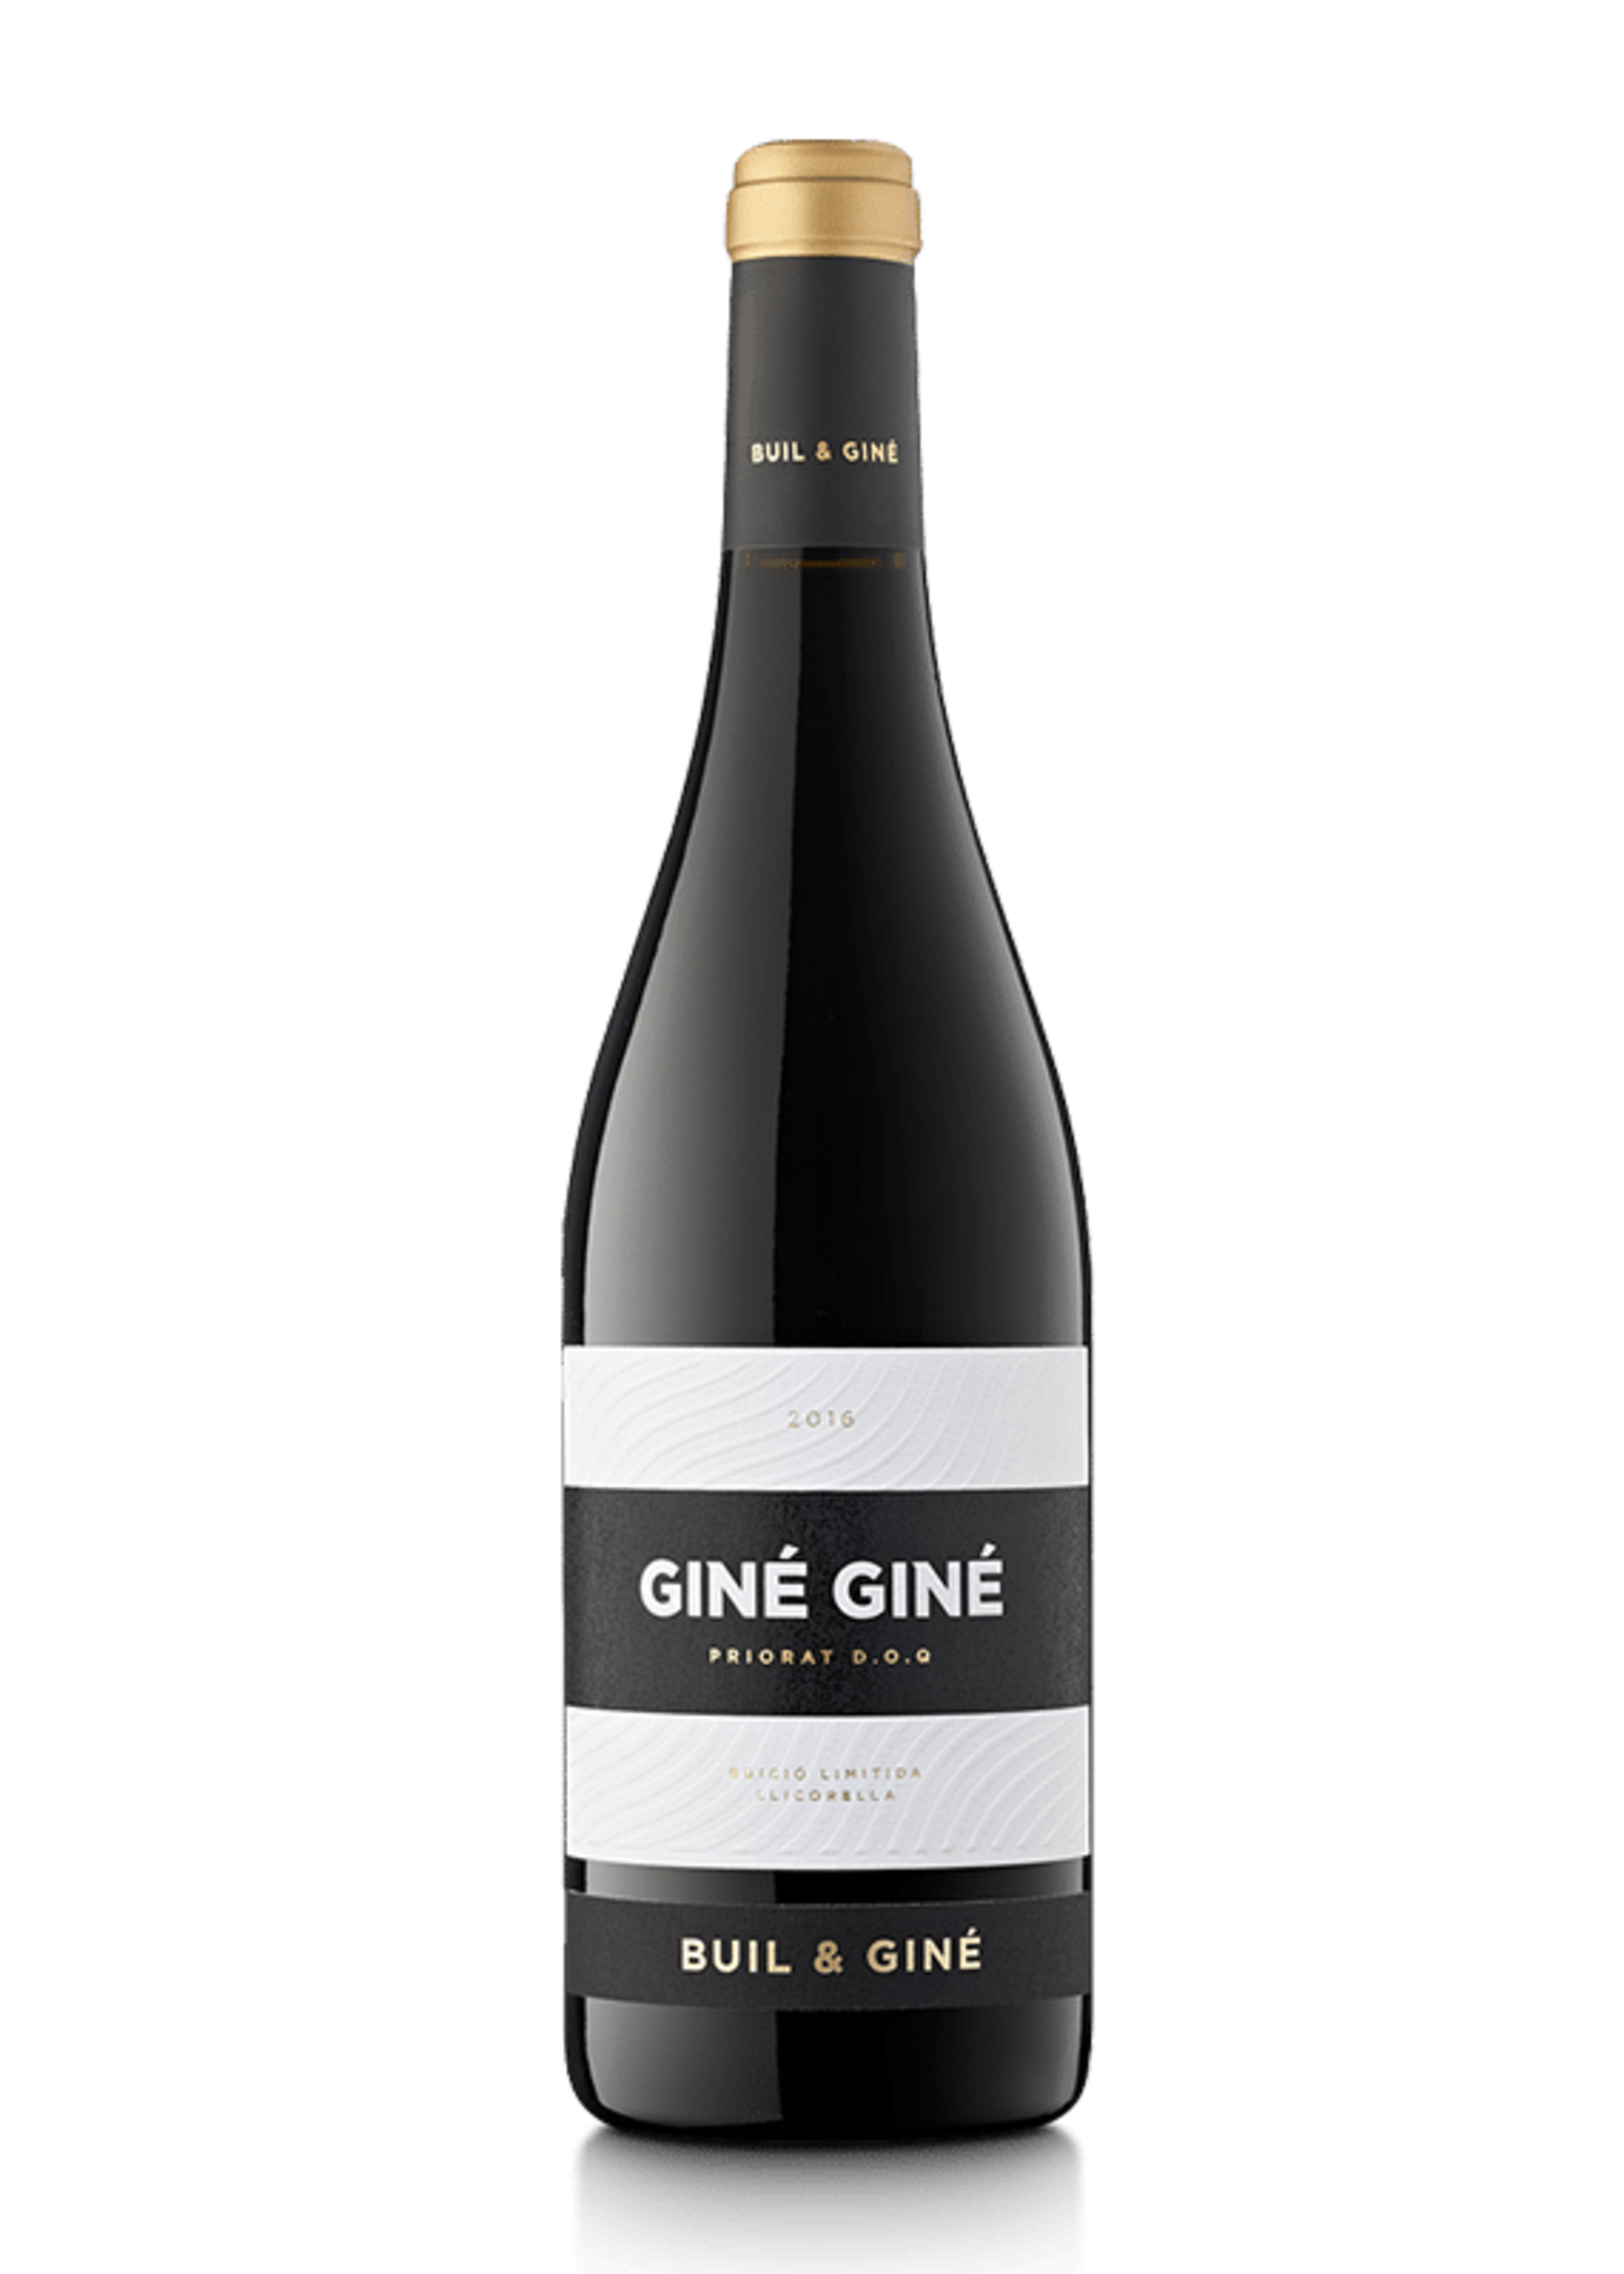 Giné Giné Priorat, Spain